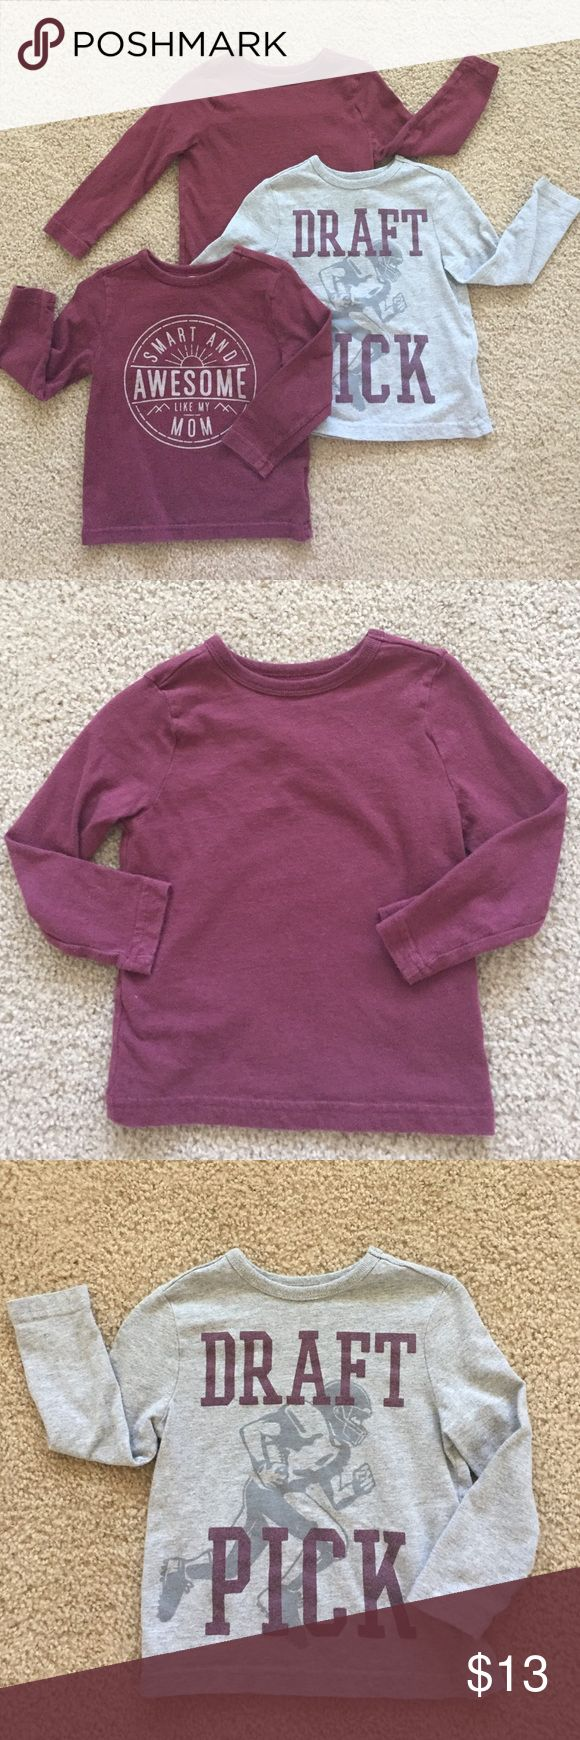 """old navy toddler bundle Bundle of three long- sleeve Old Navy tees.  All three are in great condition.   """"Smart & Awesome"""" & plain shirt without logo are a maroon color. Old Navy Shirts & Tops Tees - Long Sleeve"""